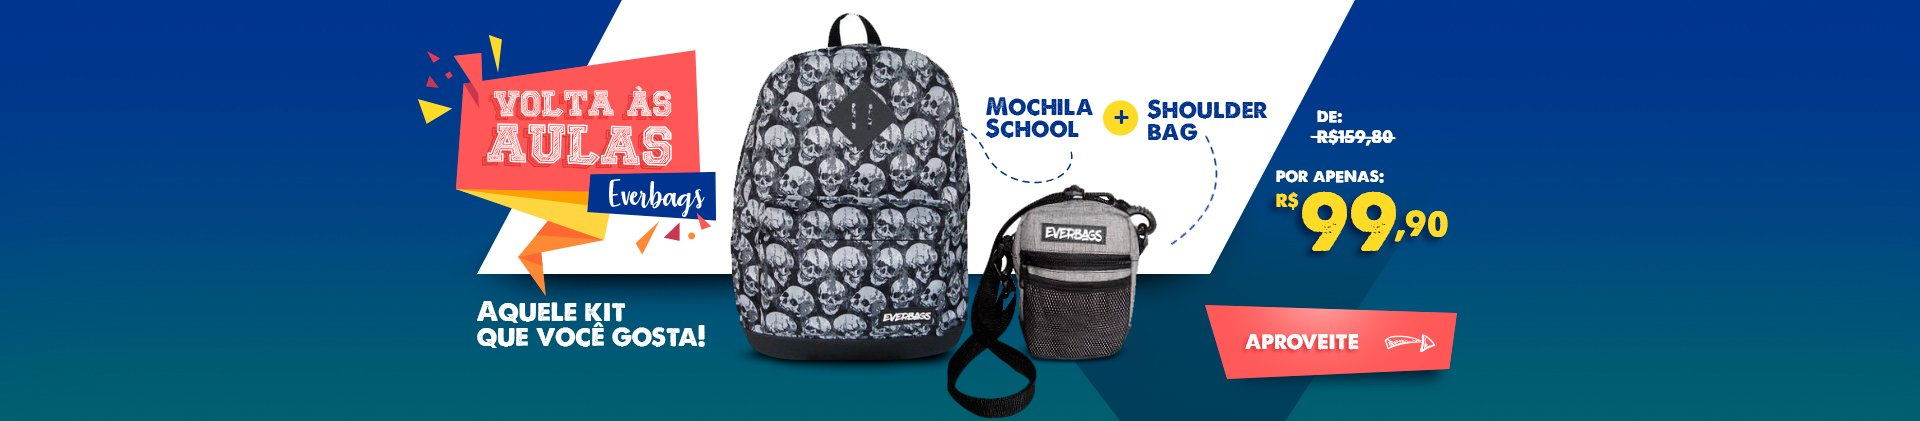 Volta As Aulas Mochila School + Shoulder Bag